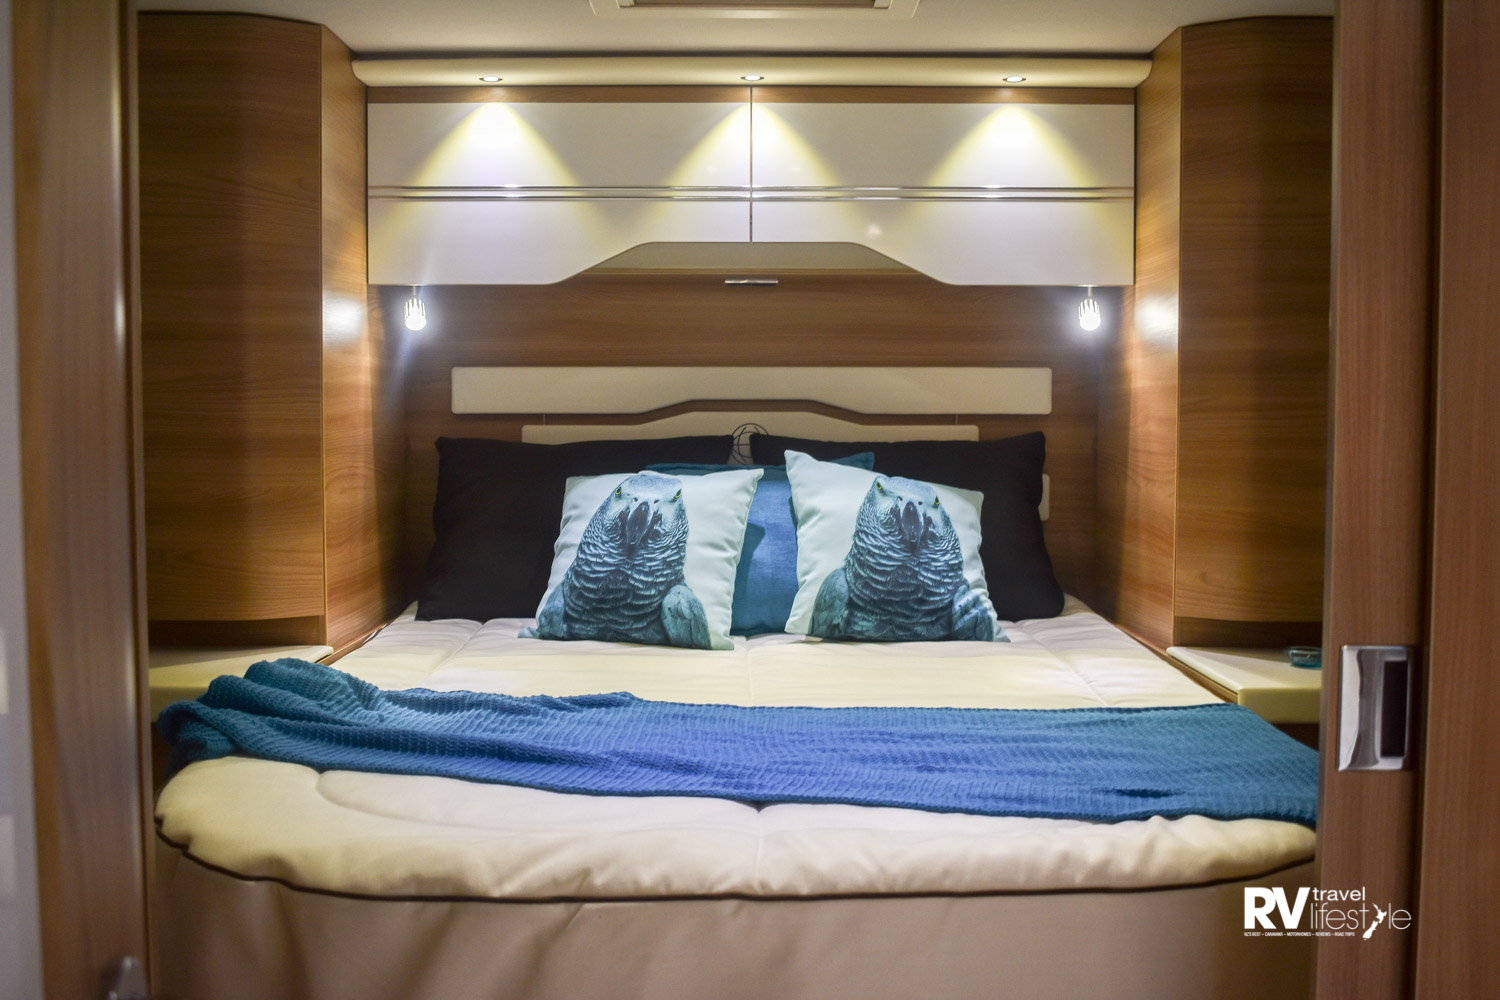 The lighting and underneath storage are features of the bedroom suite